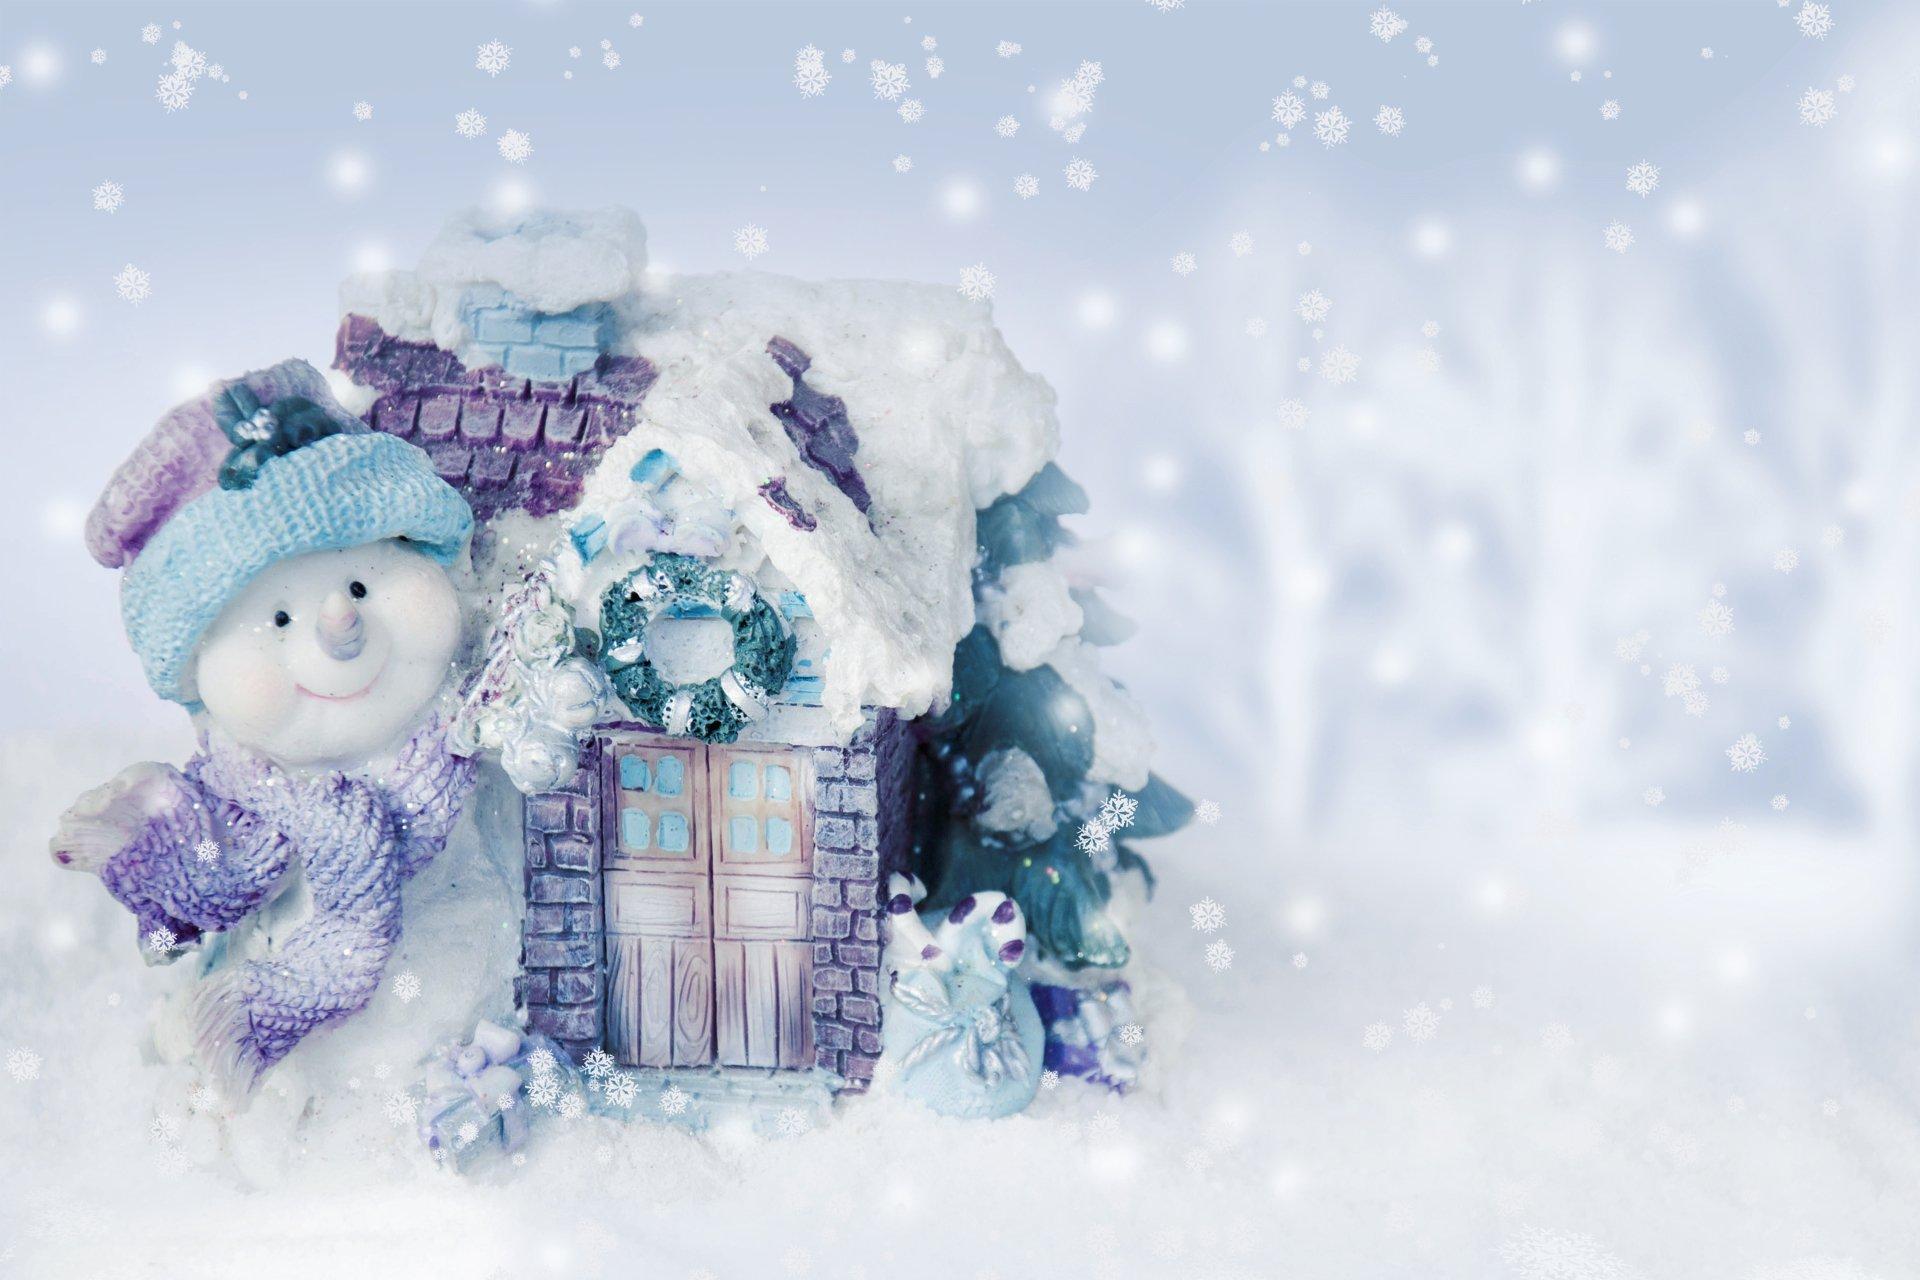 Holiday - Christmas  Holiday Winter Snowman House Snowflake Snow Cold Blue White Decoration Wallpaper